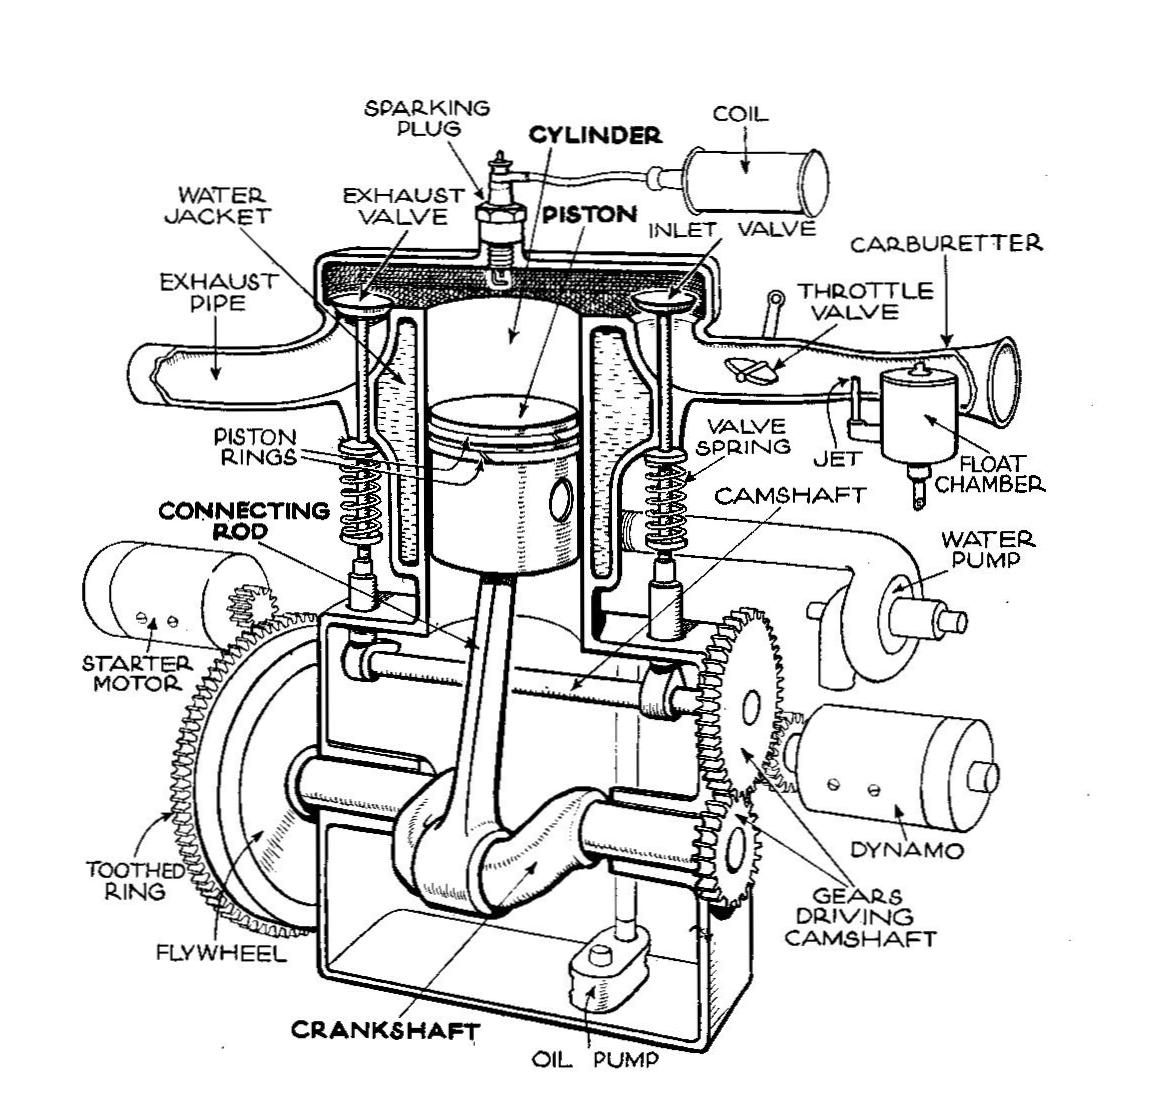 Two Speed Motor besides Ao Smith B128 Motor Wiring Diagram moreover Dayton Air  pressor Wiring Diagram as well Mars Motor Wiring Diagram additionally Wiring A Well Capacitor. on 1 3 hp condenser fan motor wiring diagram